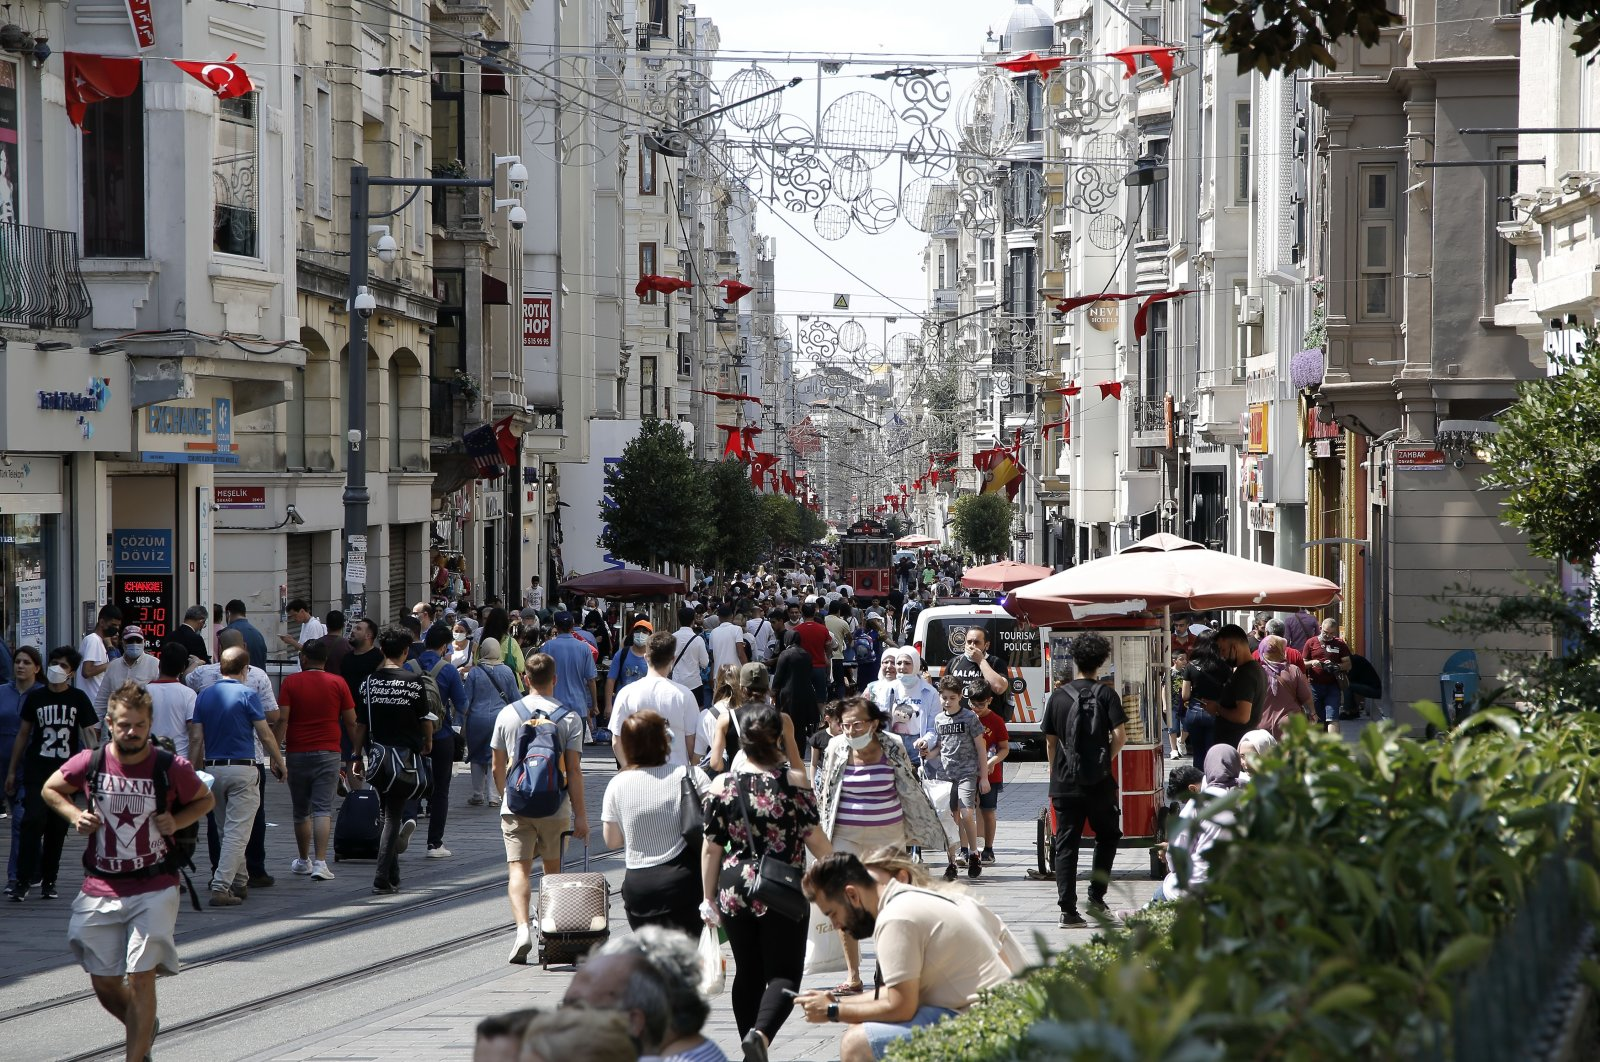 People walk in Istiklal Avenue, the main shopping street of Istanbul, Turkey, Aug. 25, 2021. (DHA Photo)